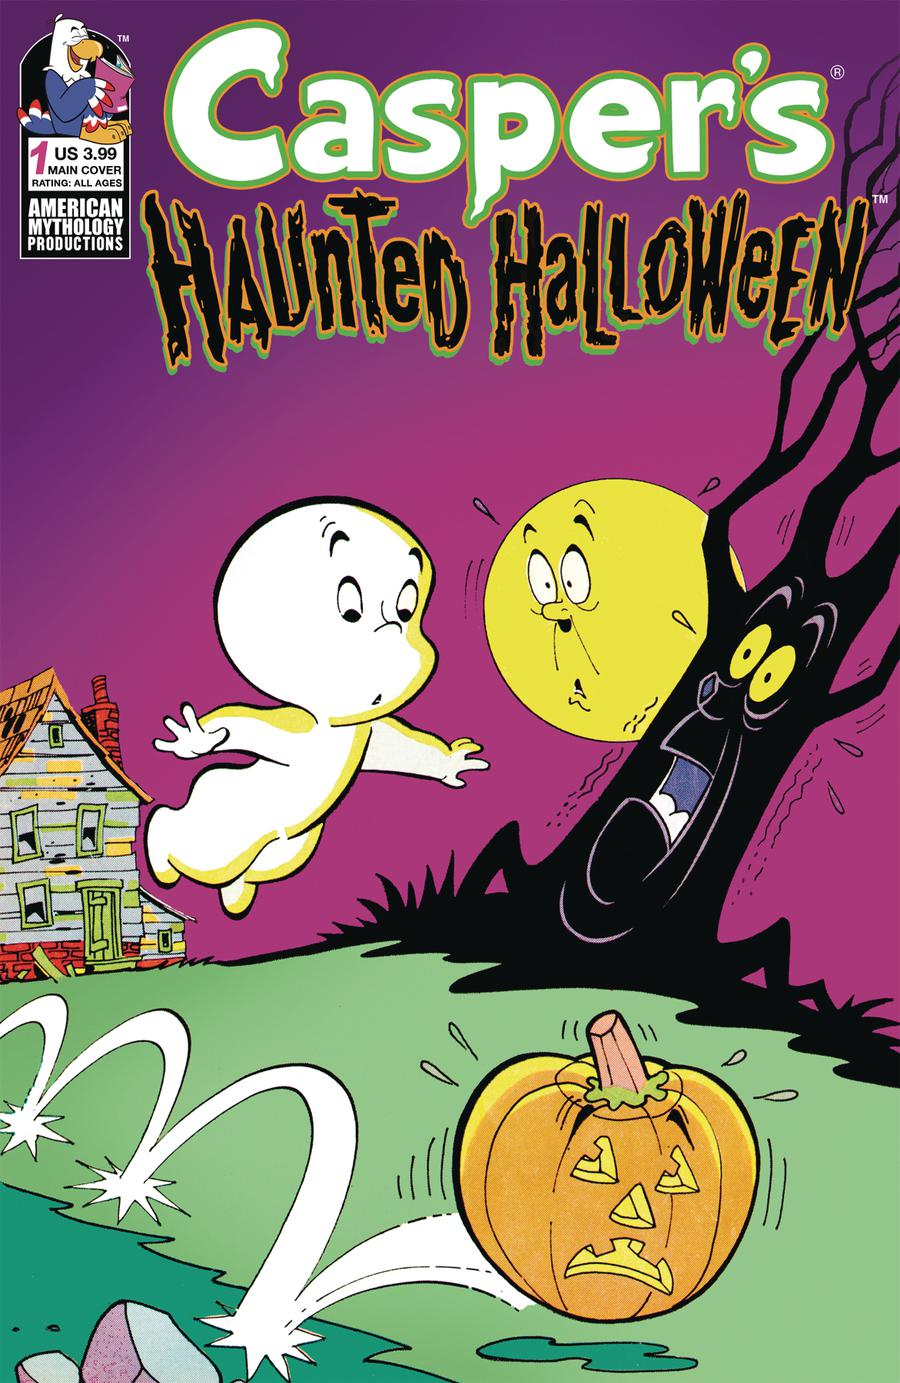 Caspers Haunted Halloween #1 Cover A Regular Cover